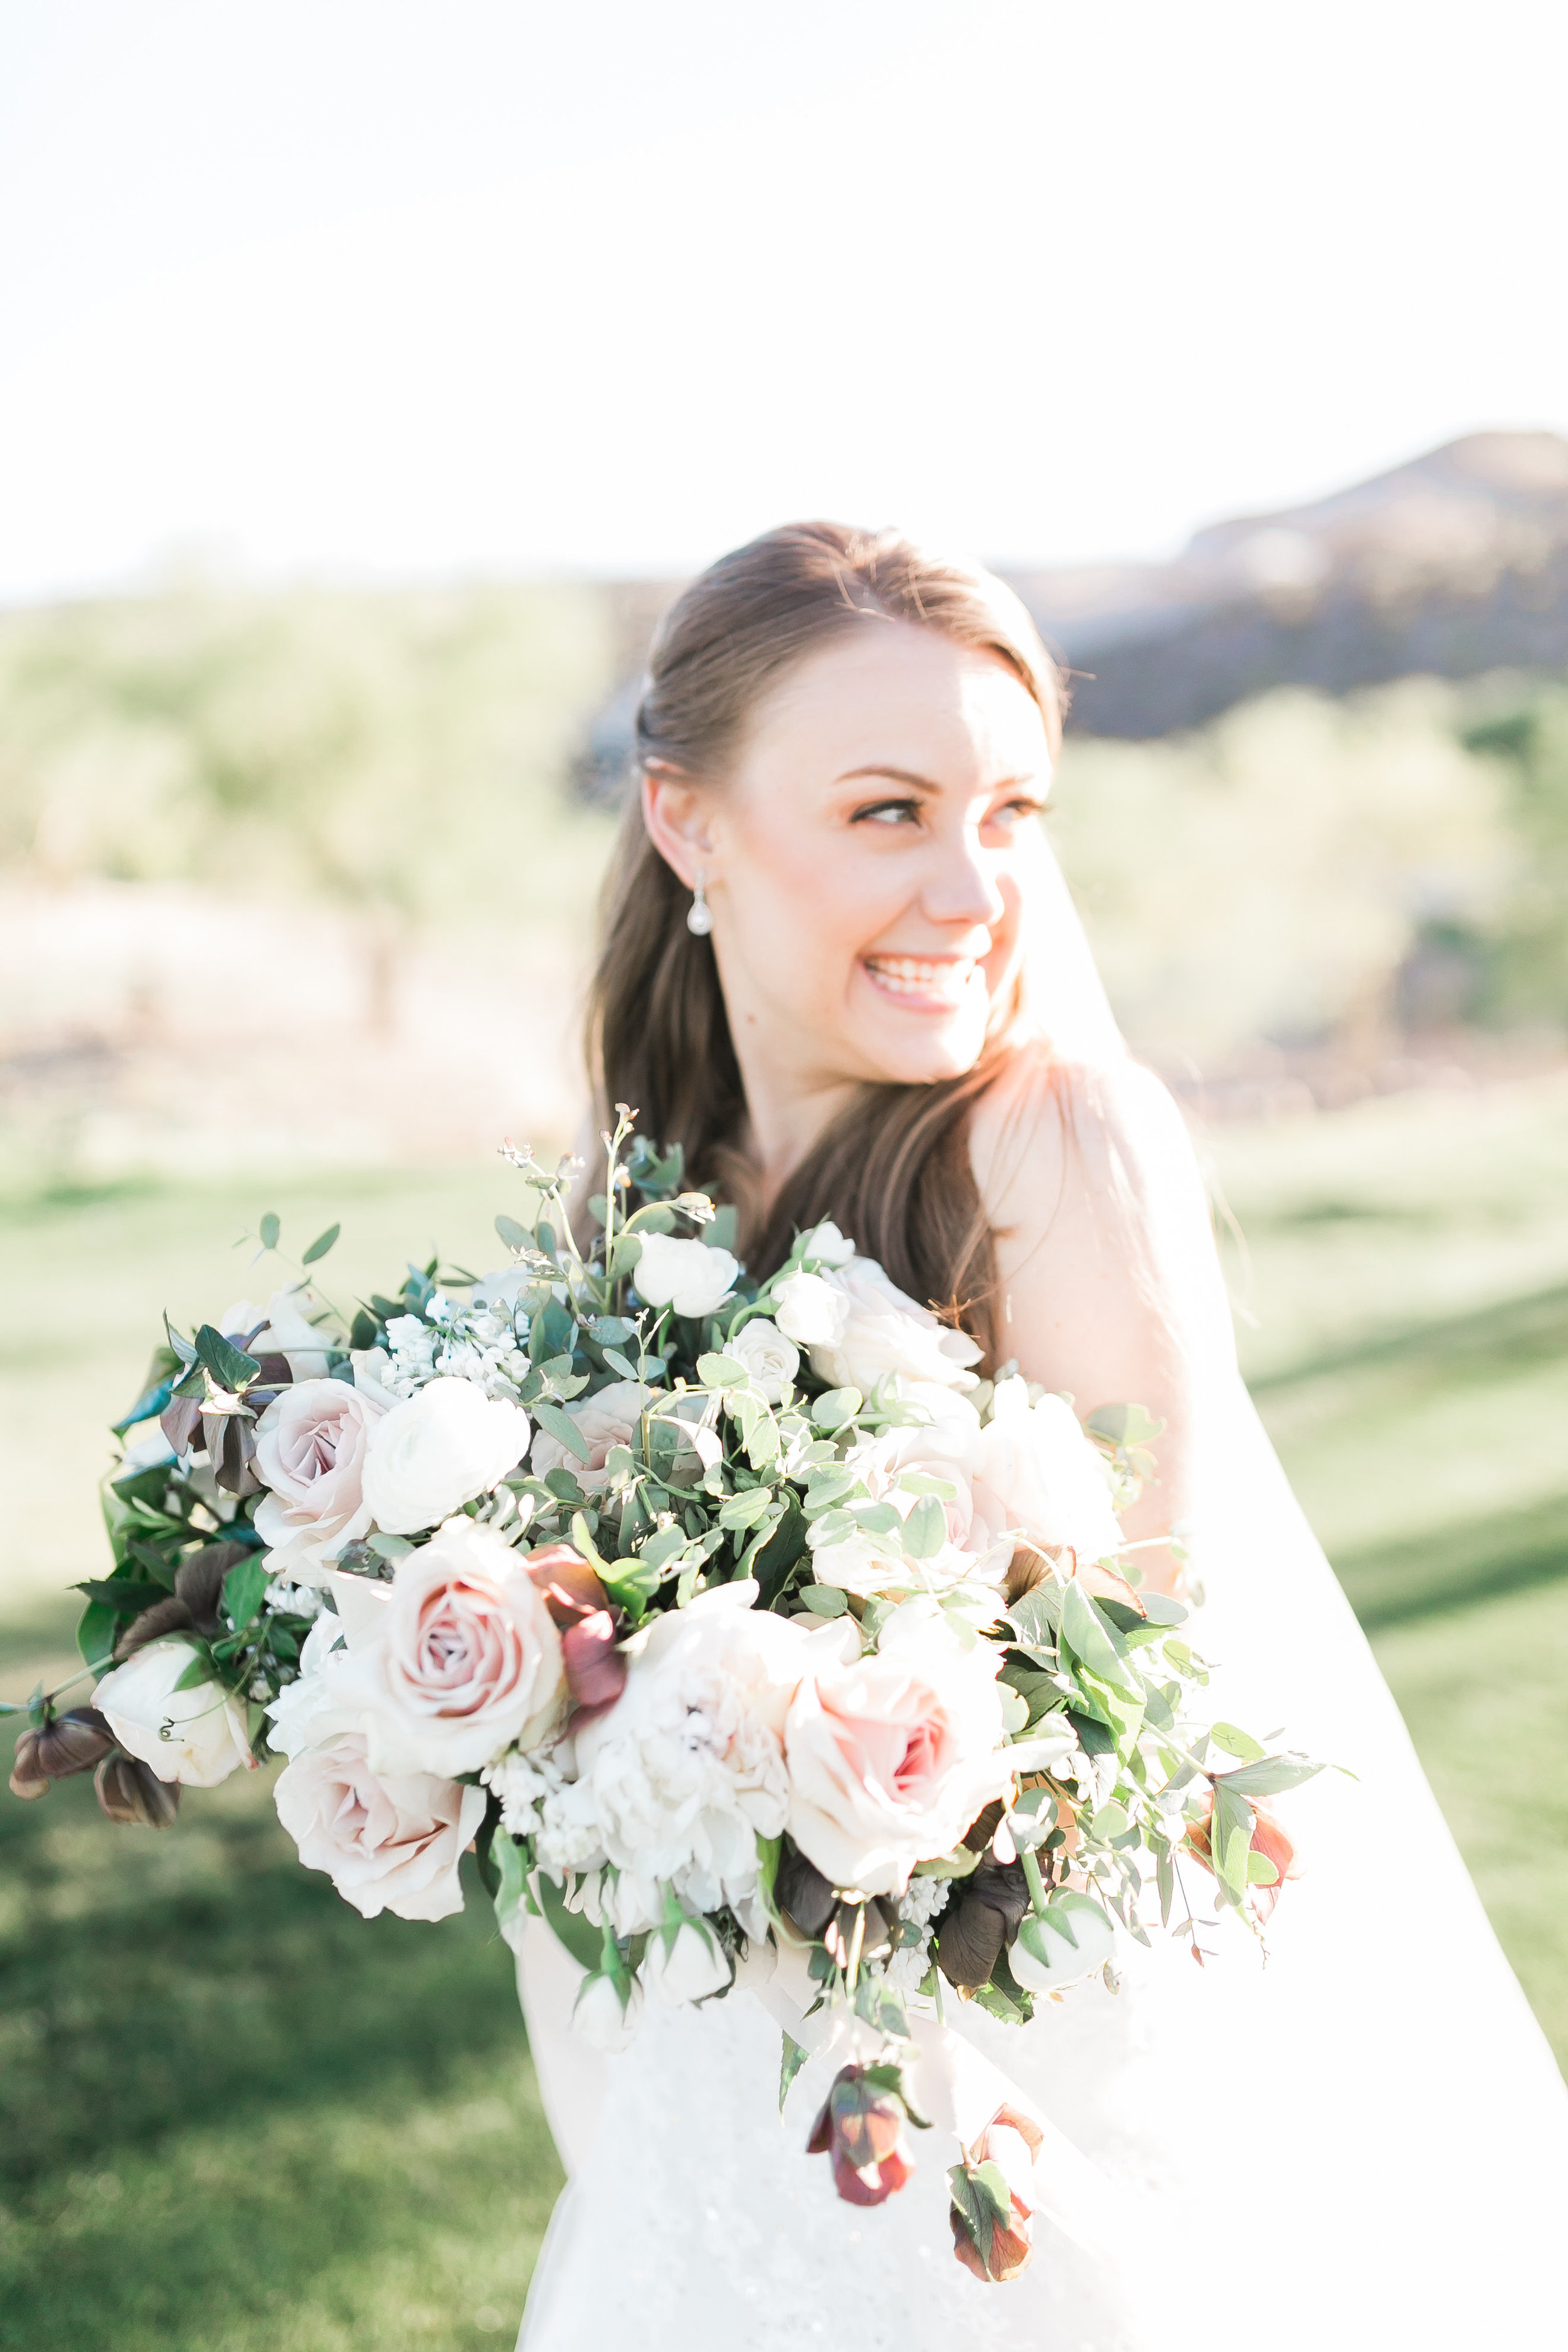 Spring bridal bouquet with blush and mauve blooms by Layers of Lovely